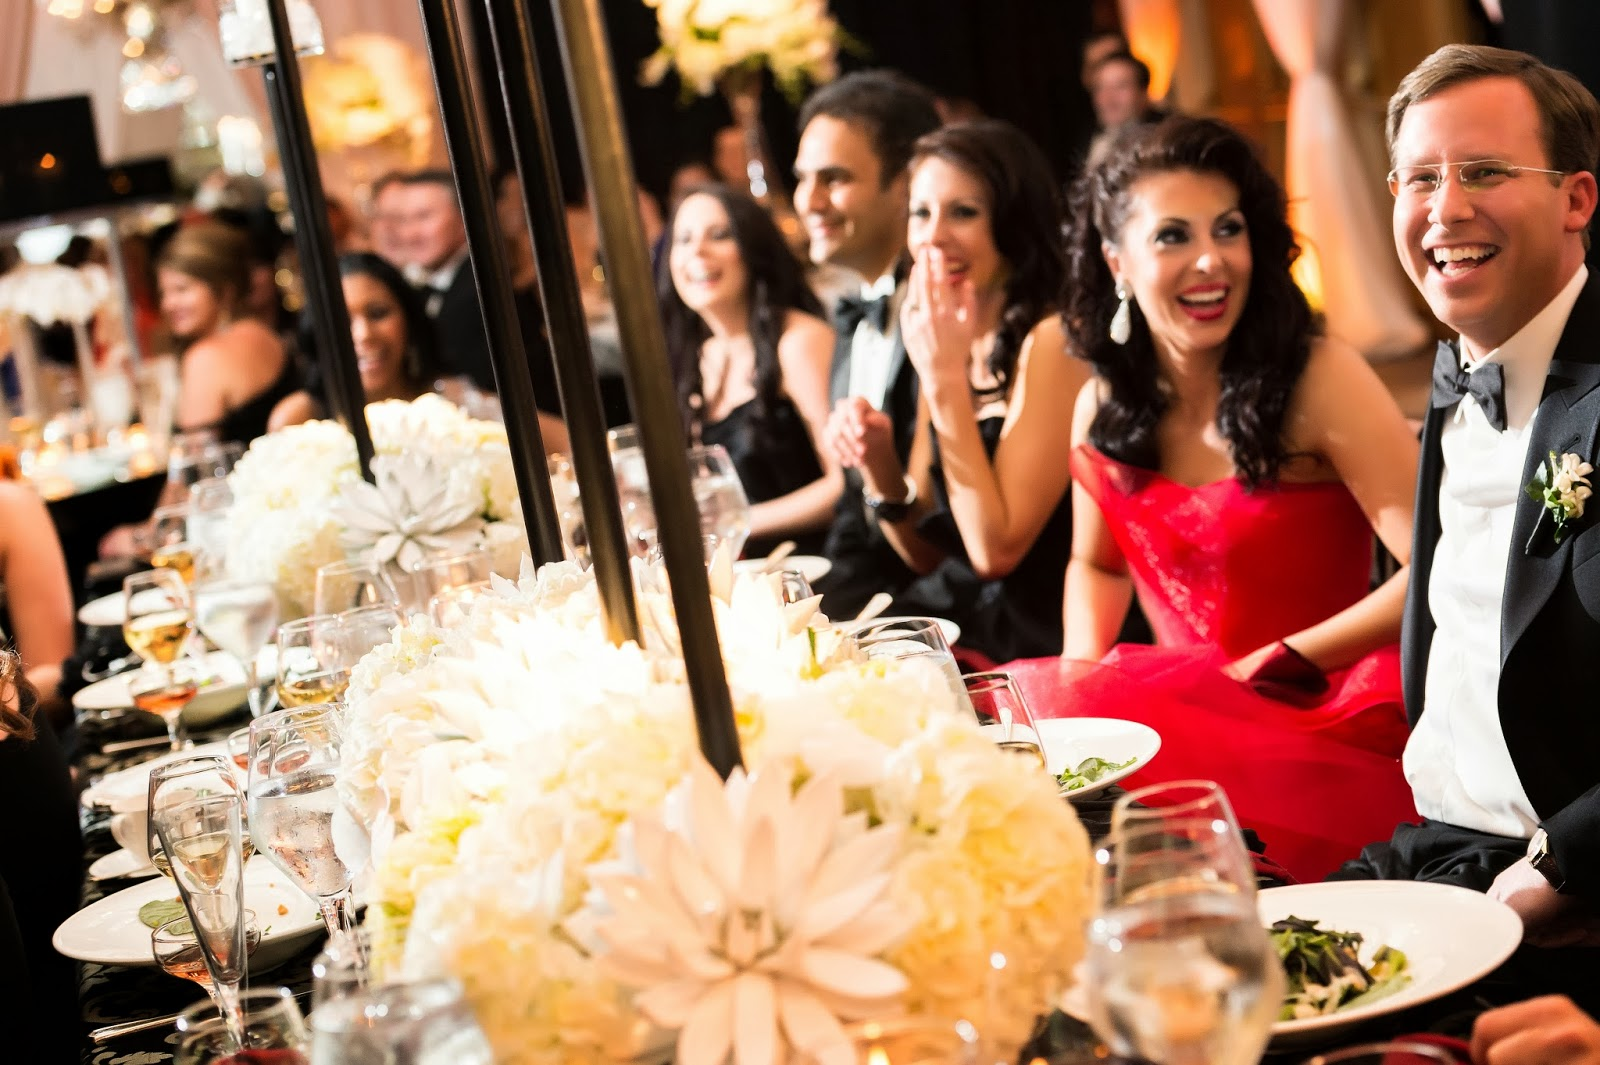 Bridal Bubbly Red Hot Romance At The Four Seasons